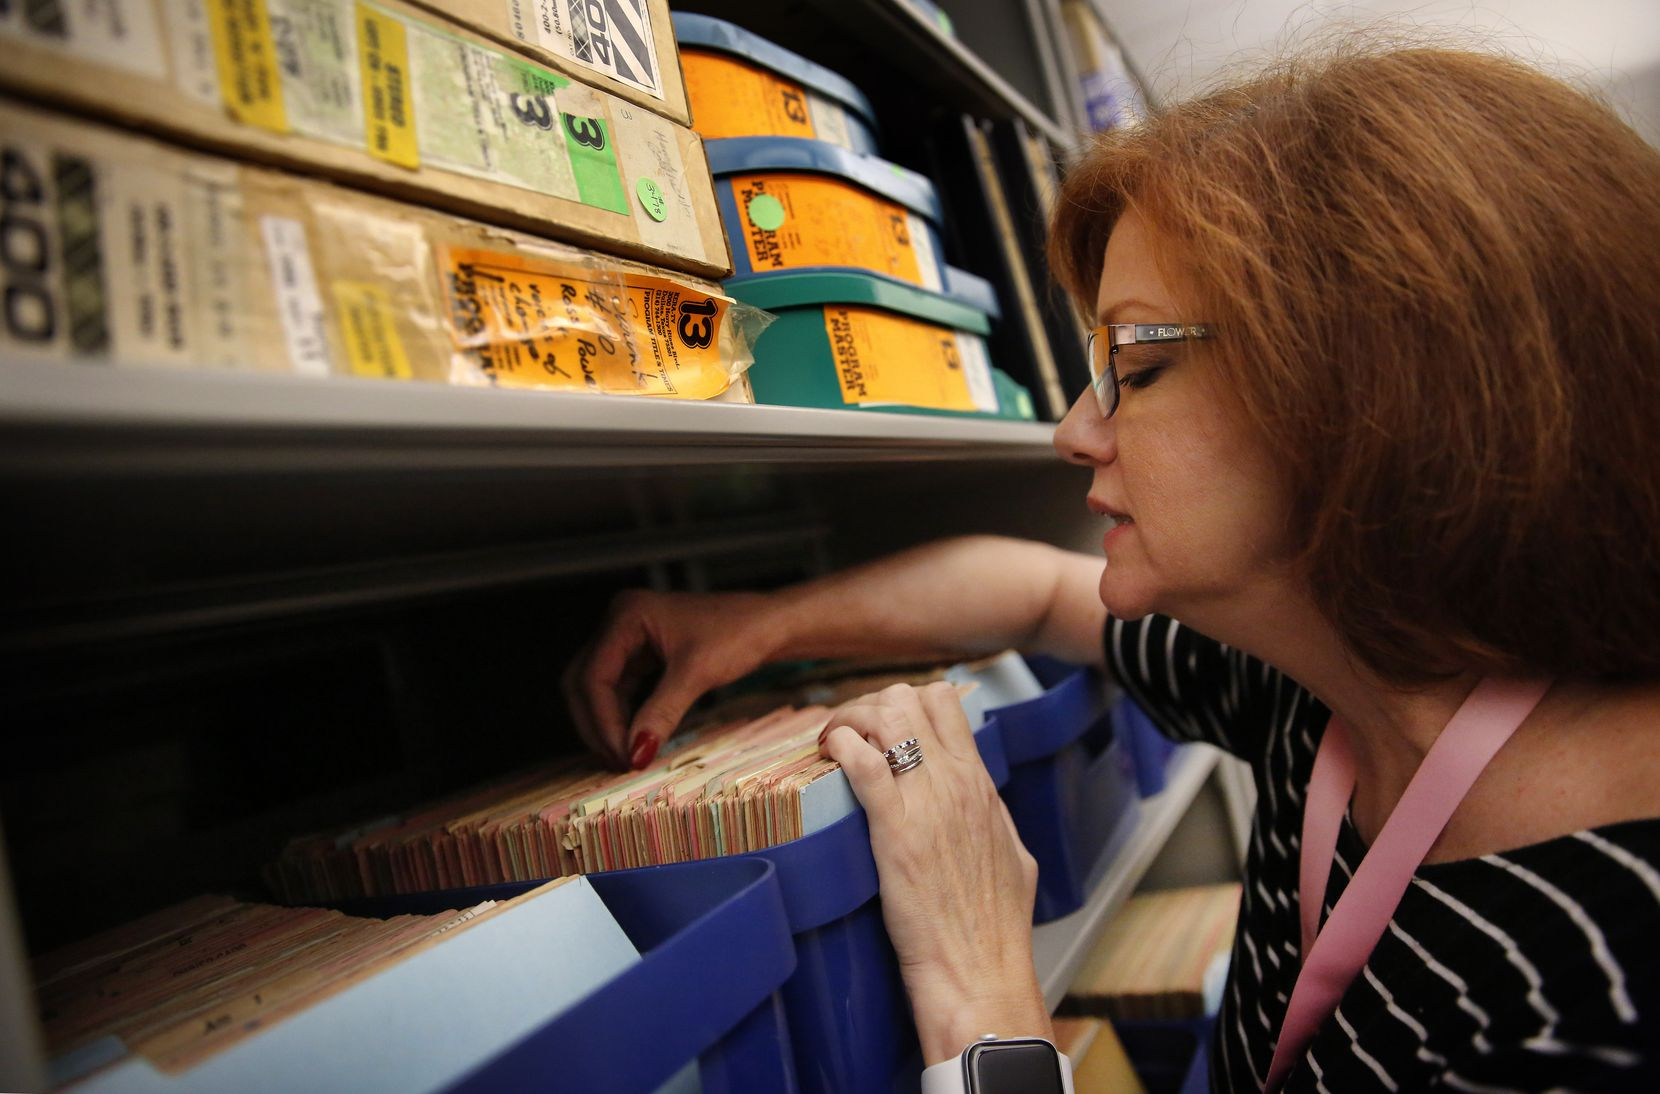 Christine Sharbrough, manager of the library's Dallas History & Archives Division, looks through lot owners cards as part of the Oakland Cemetery records collection.